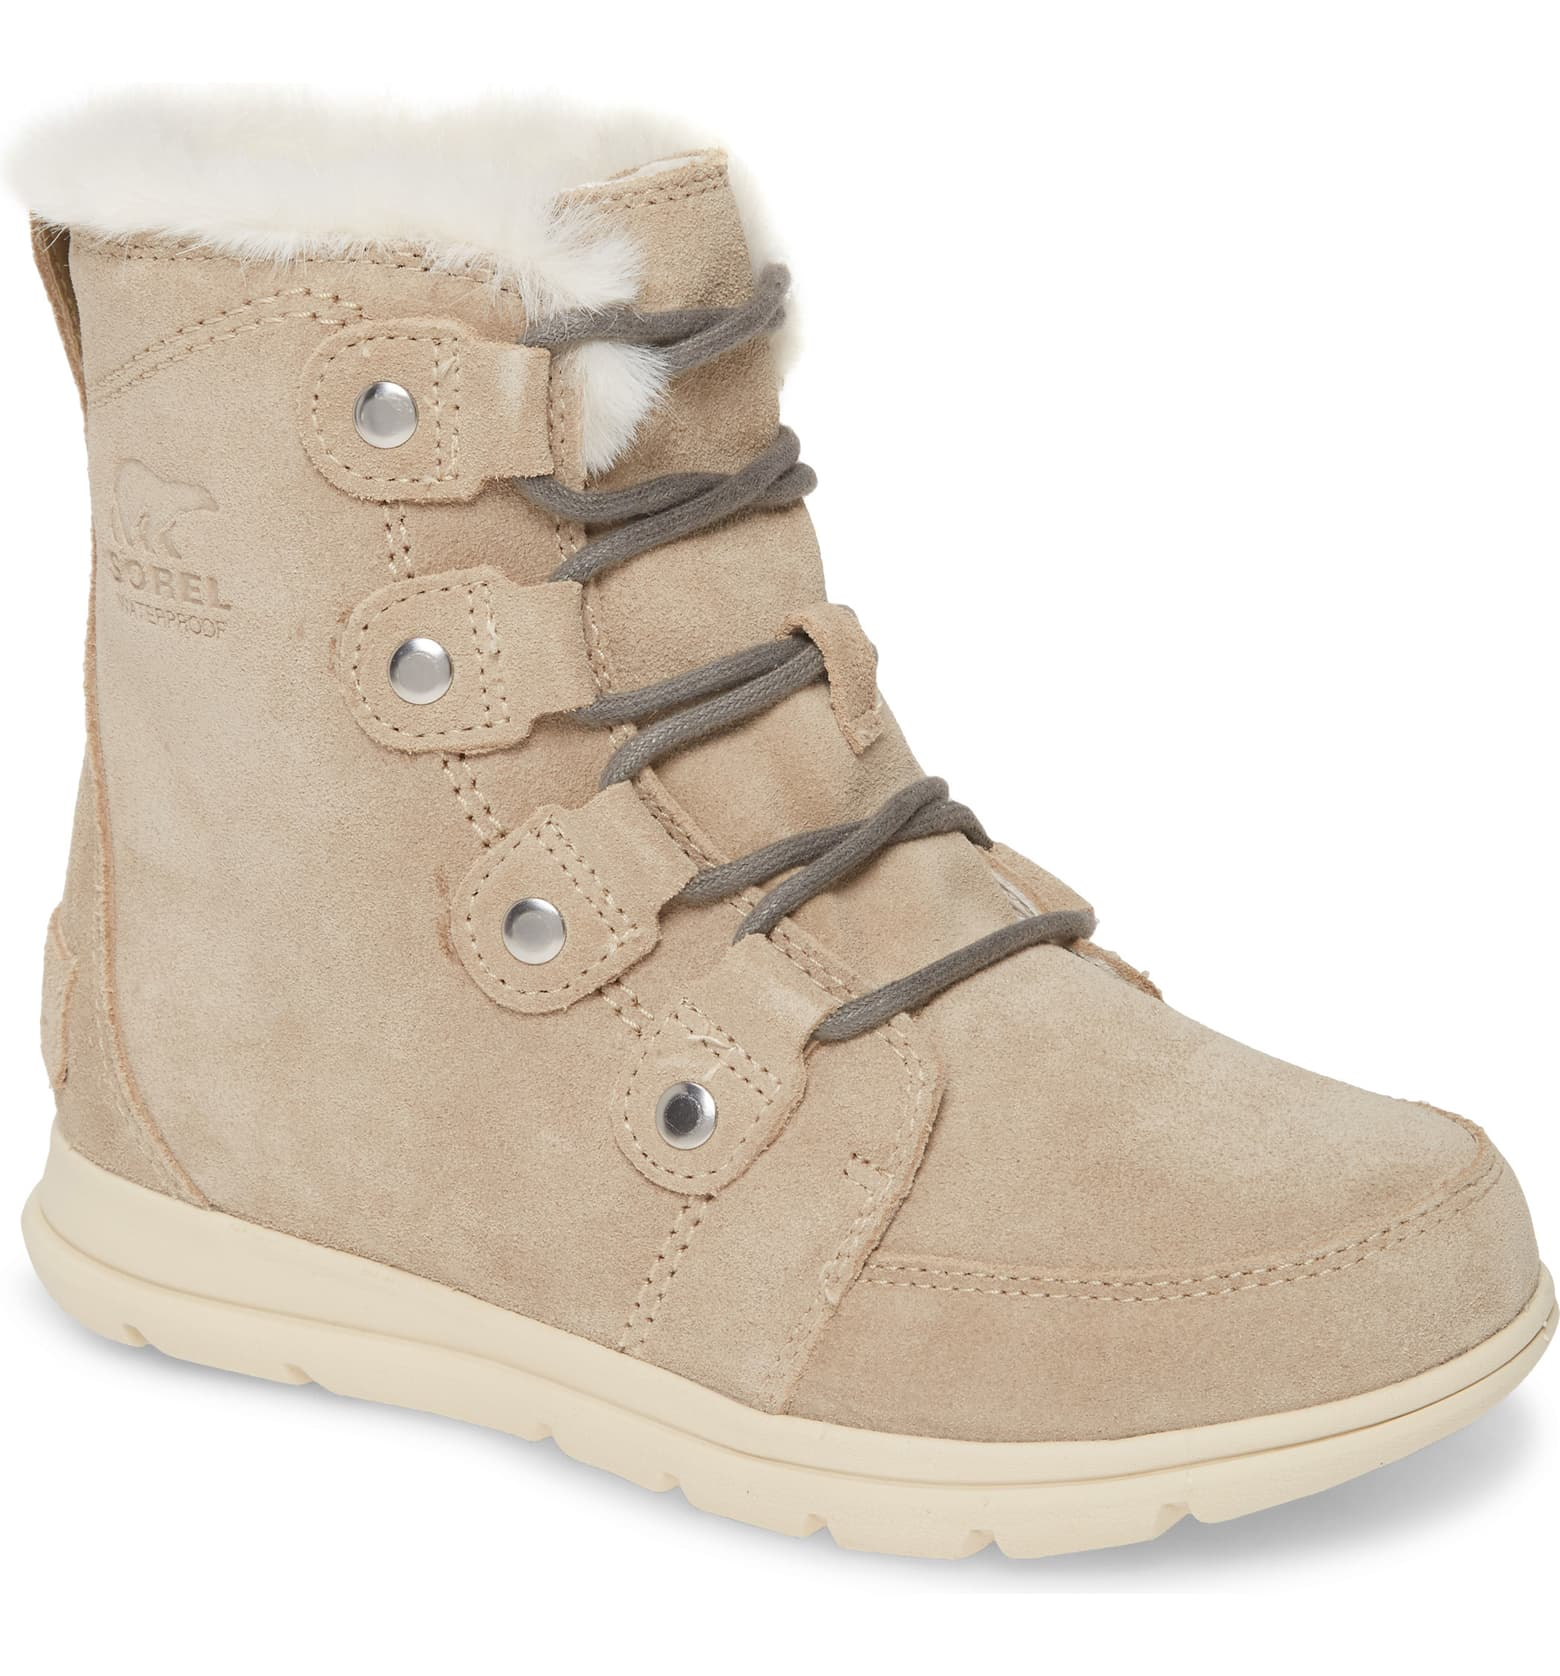 Sorel boots make some seriously cozy options for fall weather like these Joan Waterproof Boots.